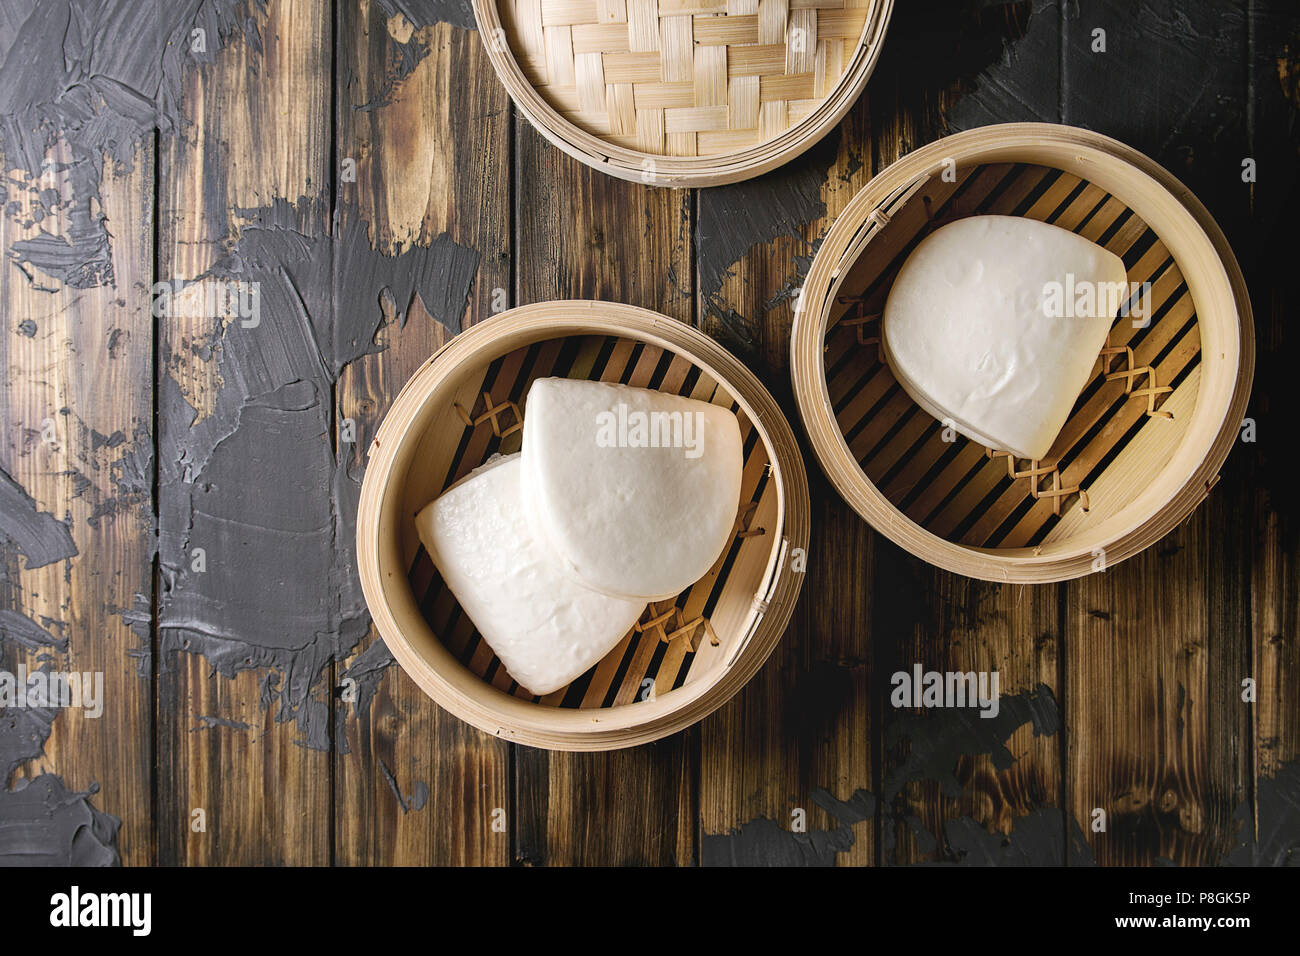 Empty gua bao steamed buns in opened bamboo steamer over dark wooden plank background. Flat lay, space. Asian fast food. - Stock Image